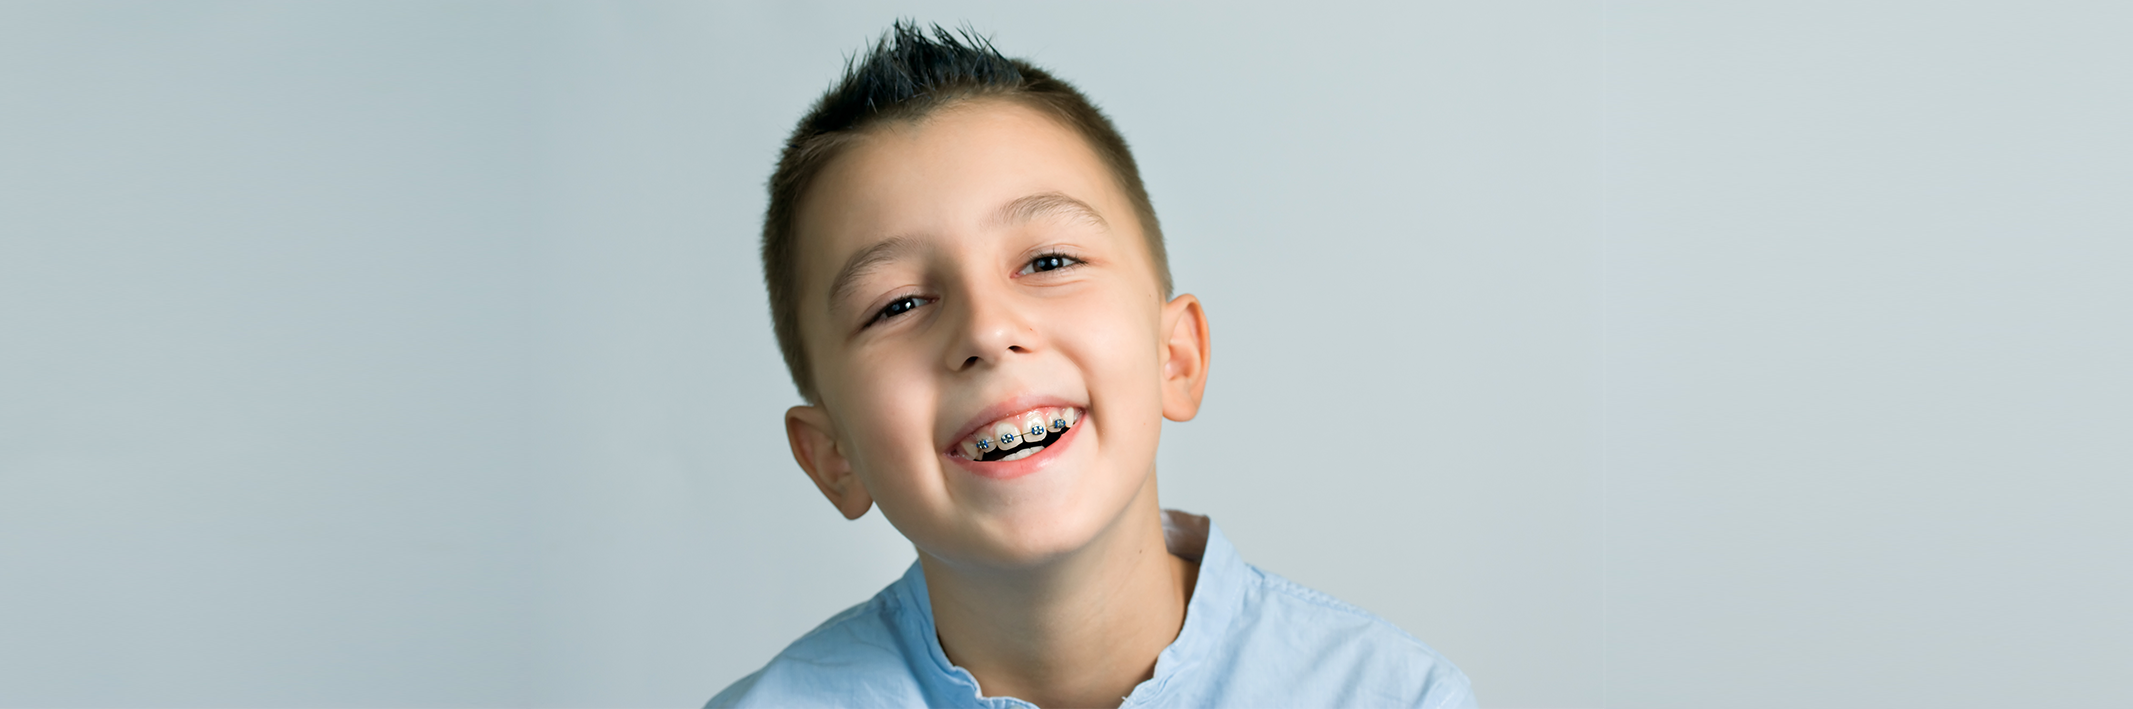 Early Orthodontic Treatment Is An Investment In Your Child's Dental Health